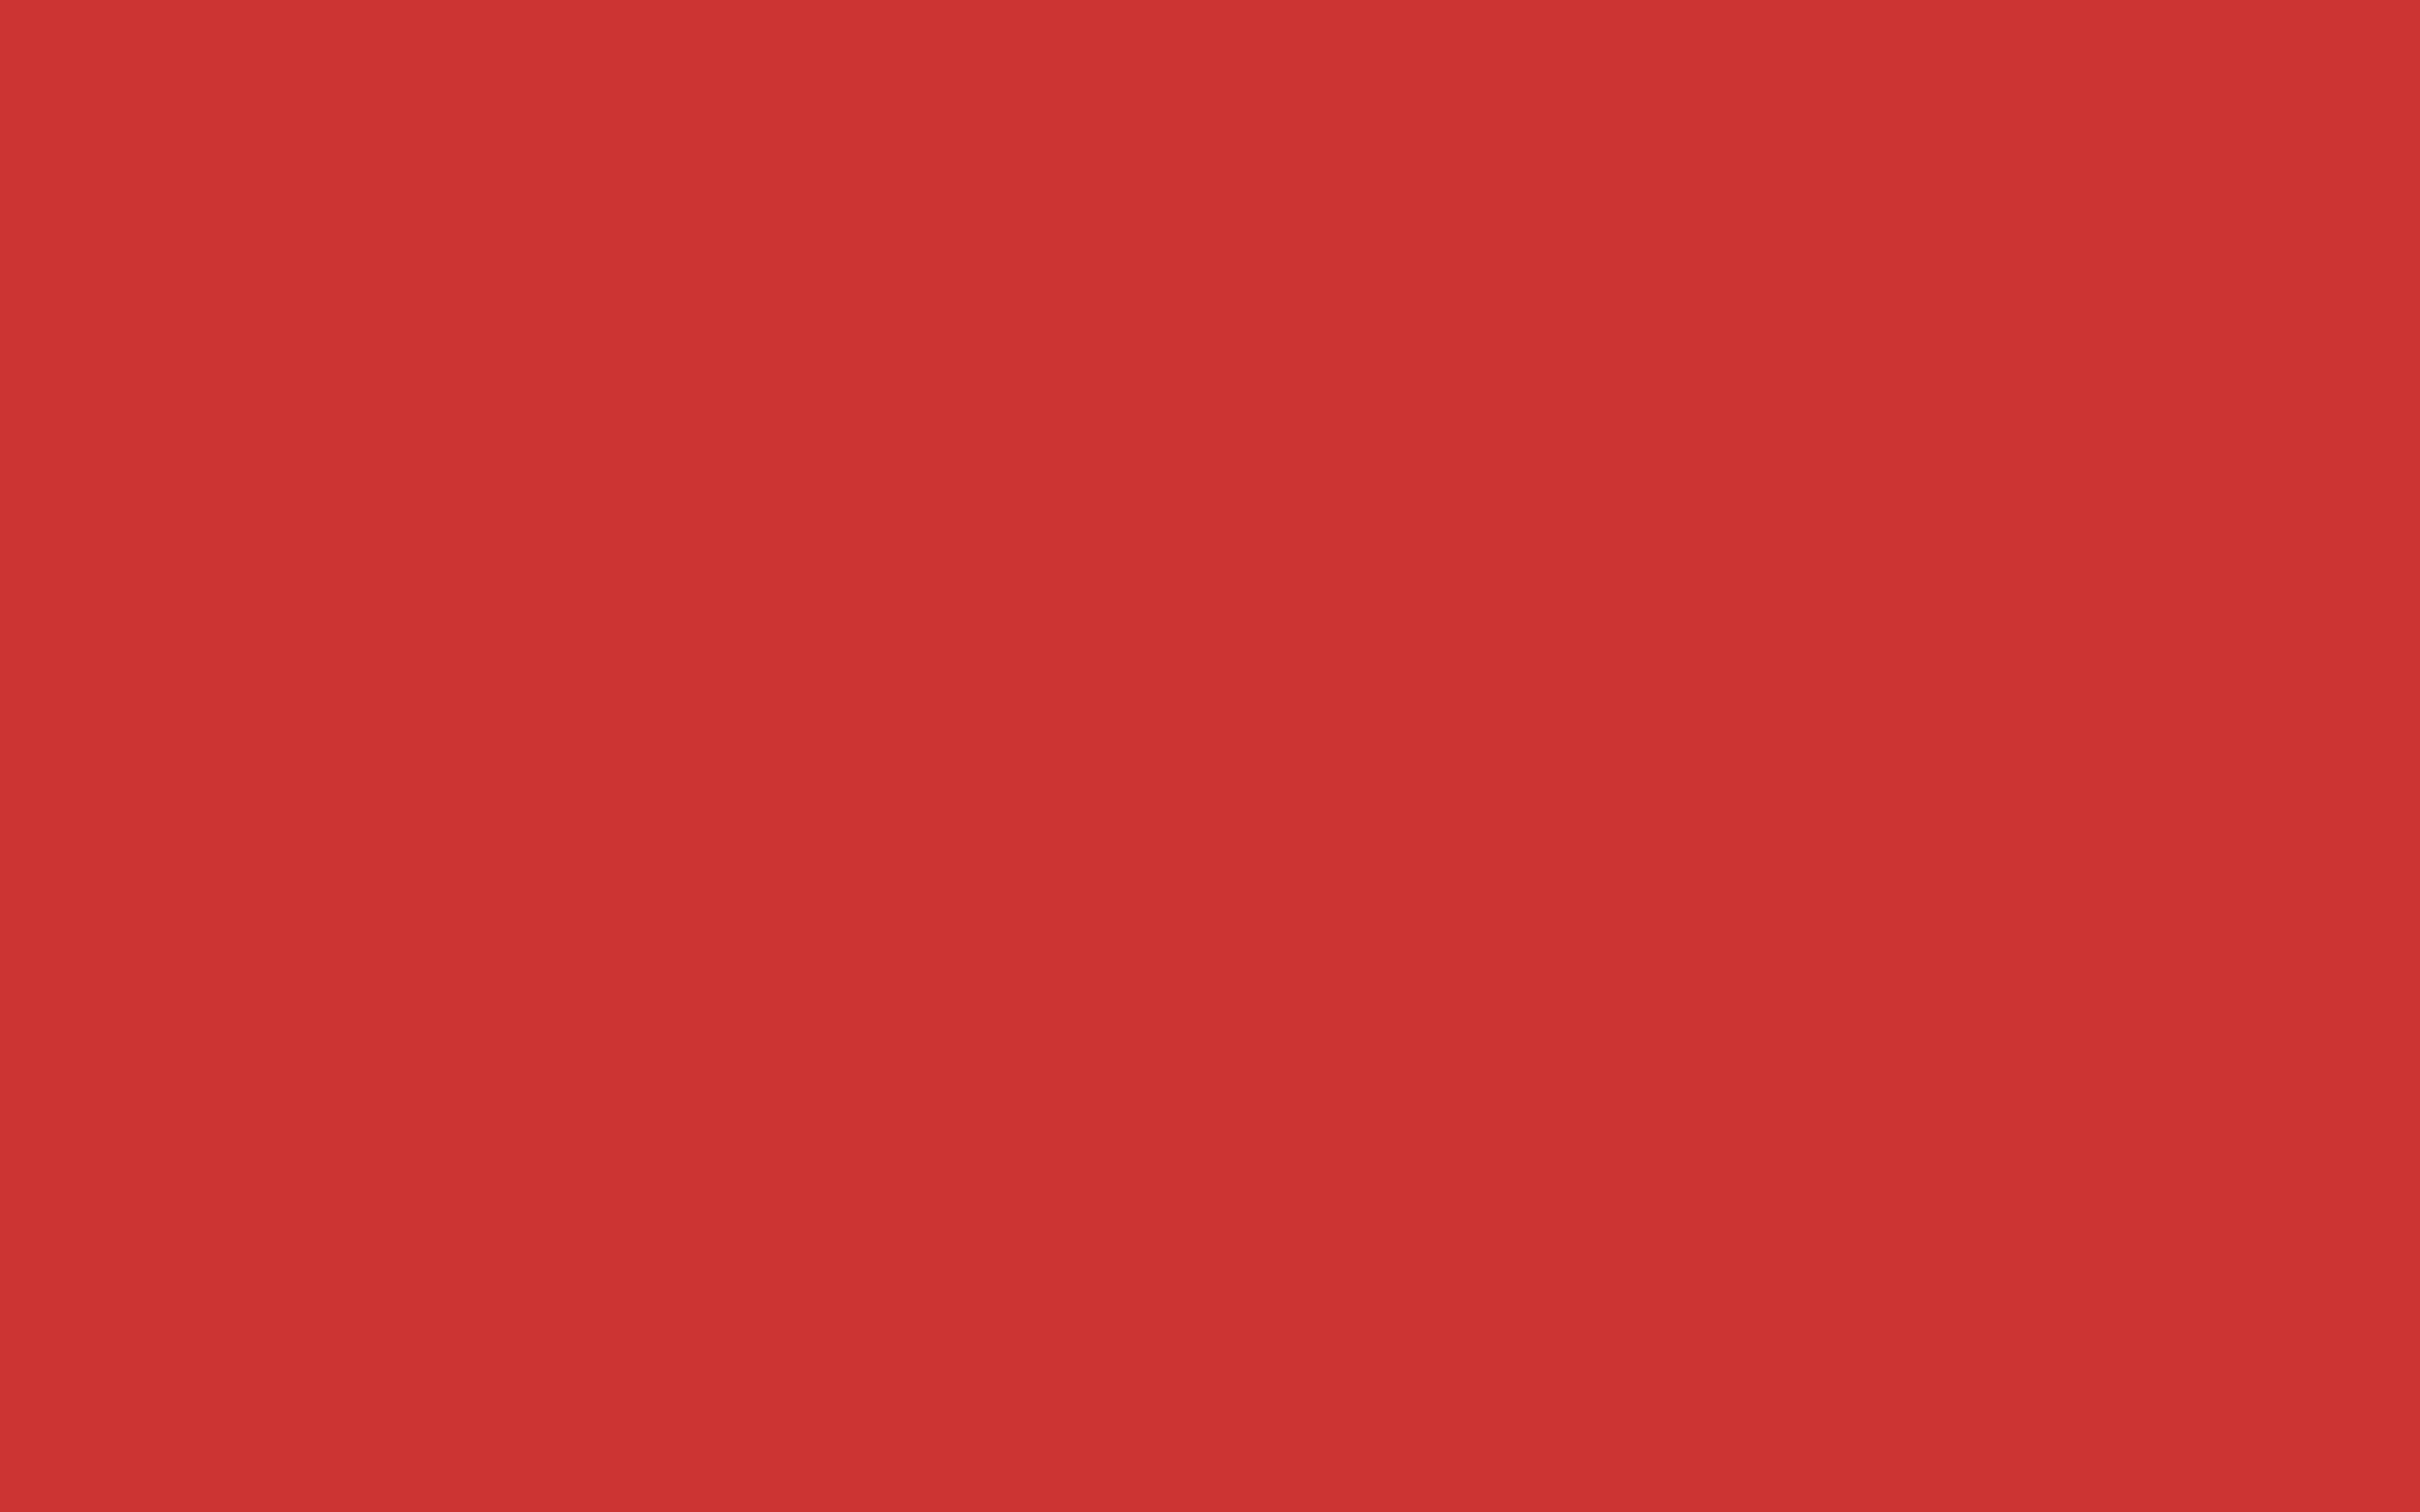 2560x1600 Persian Red Solid Color Background